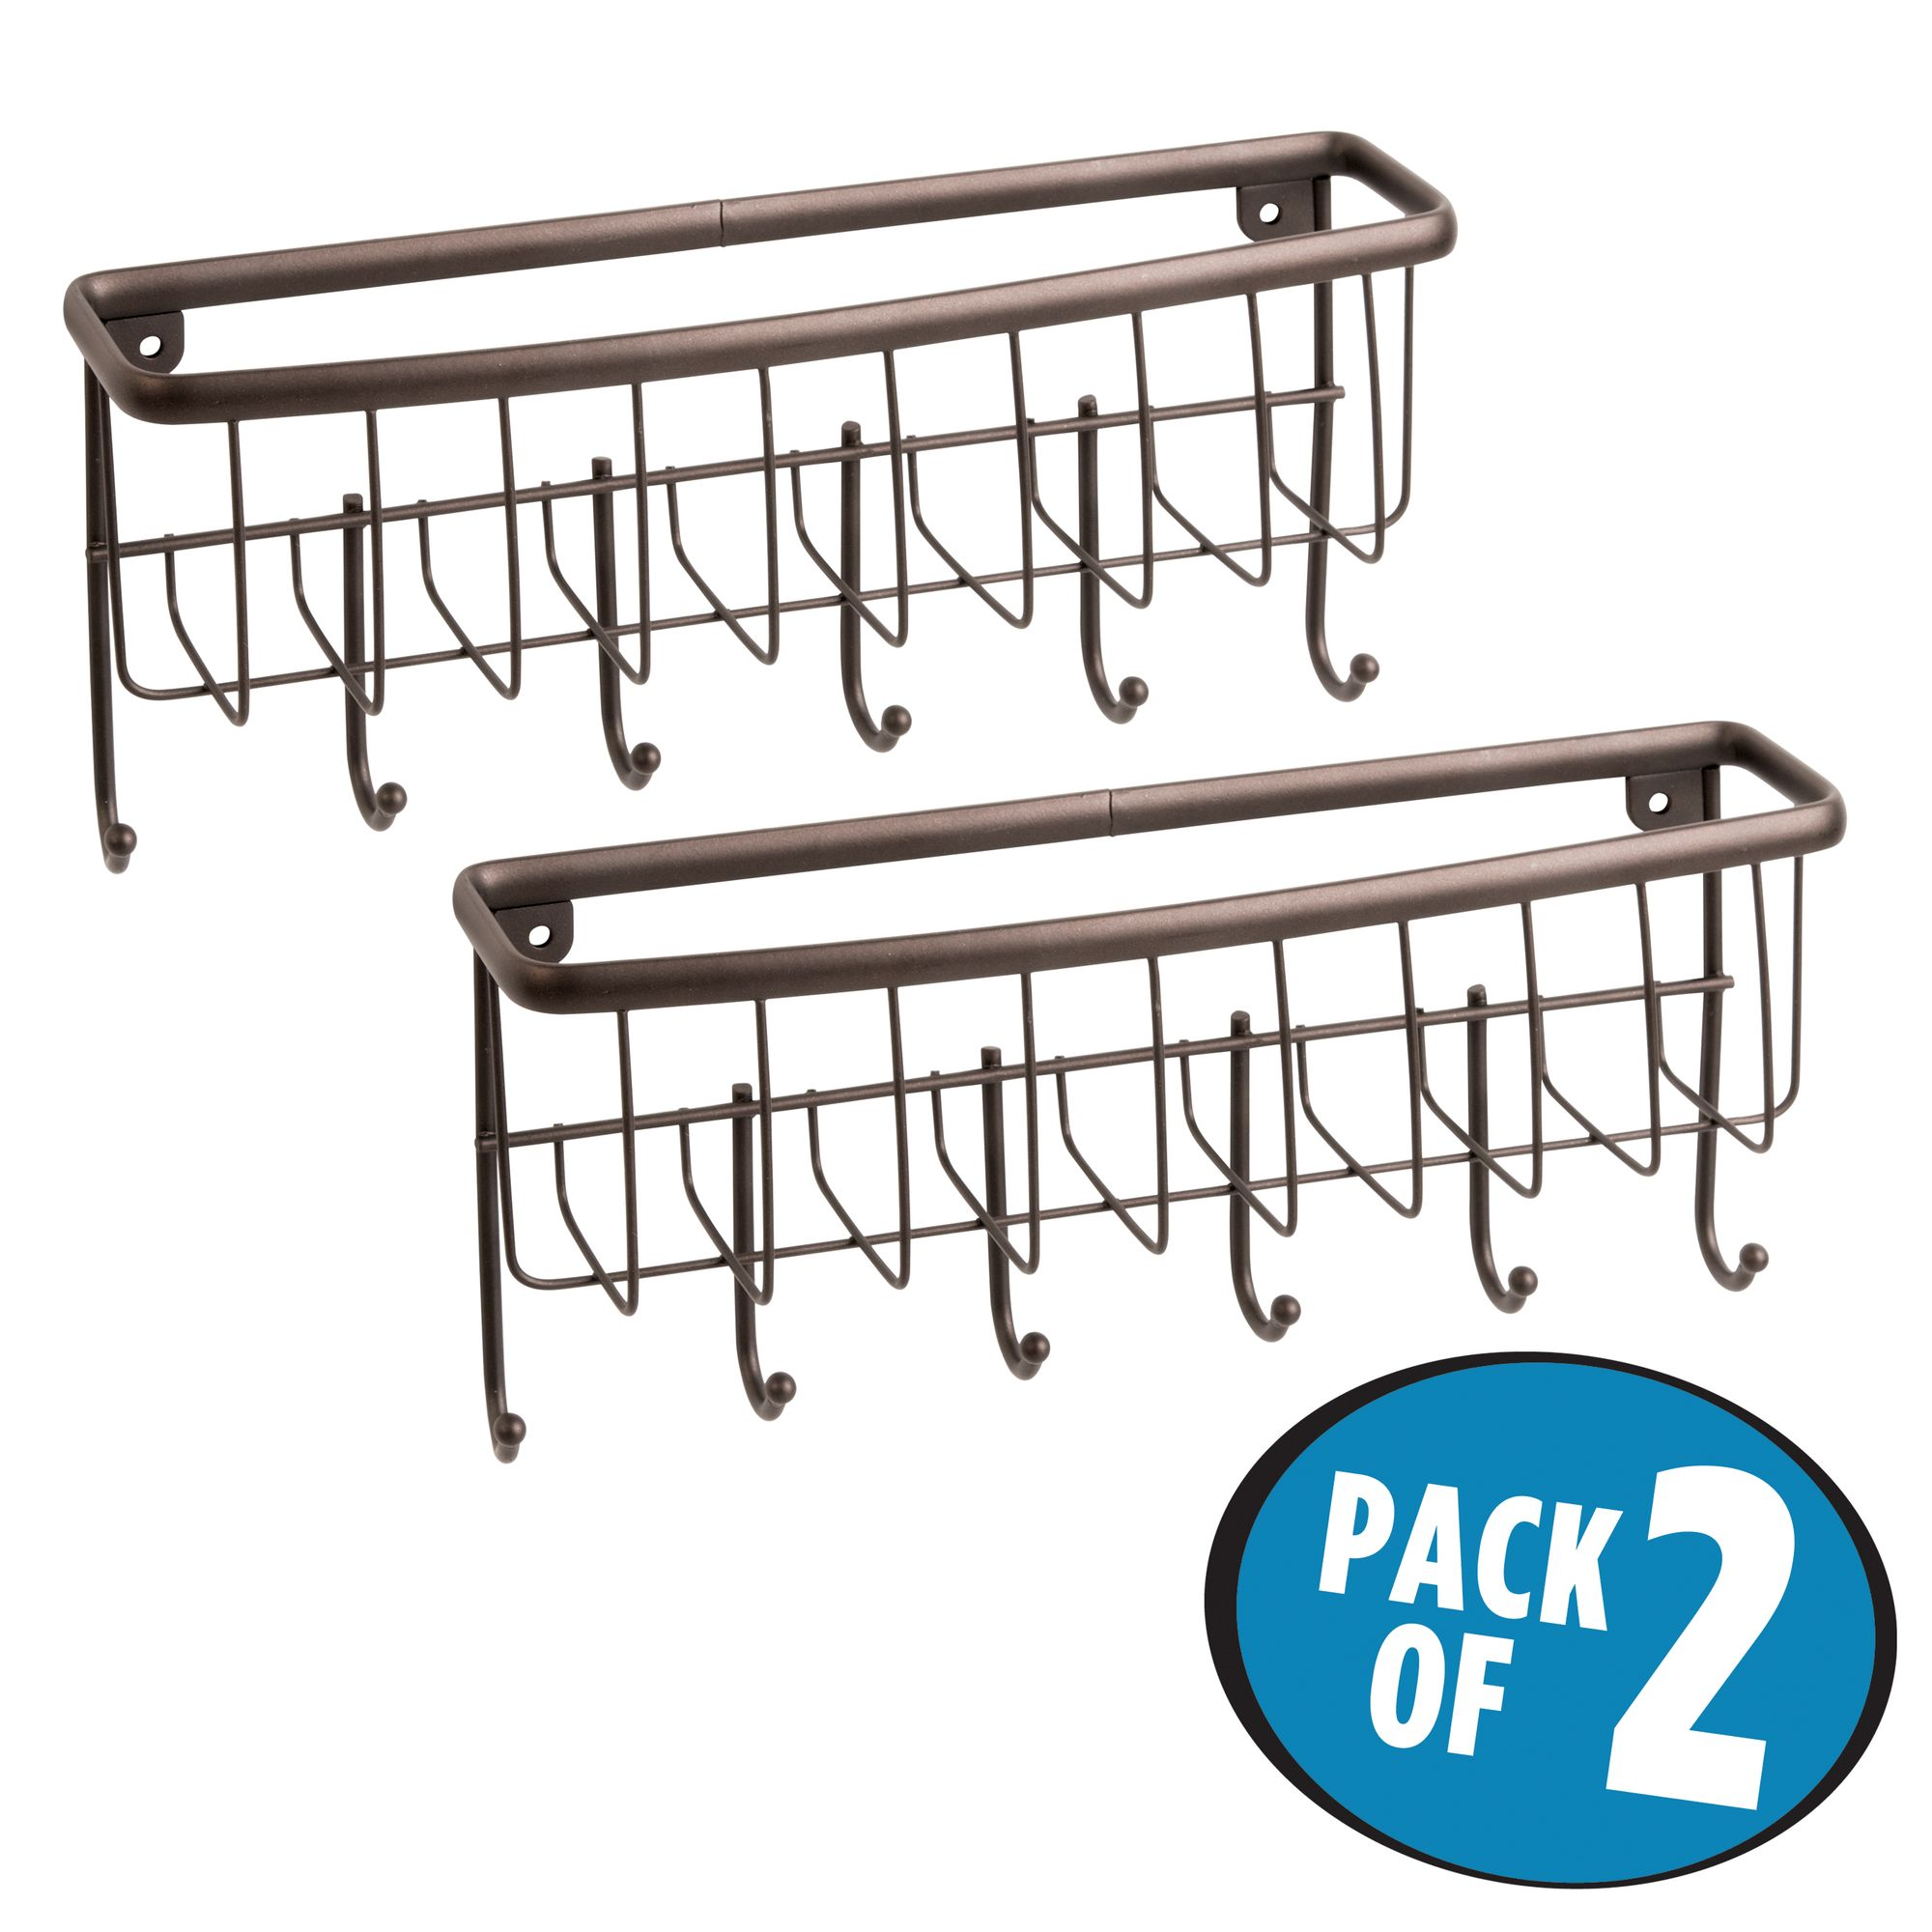 InterDesign Axis Mail and Key Rack, Pack of 2